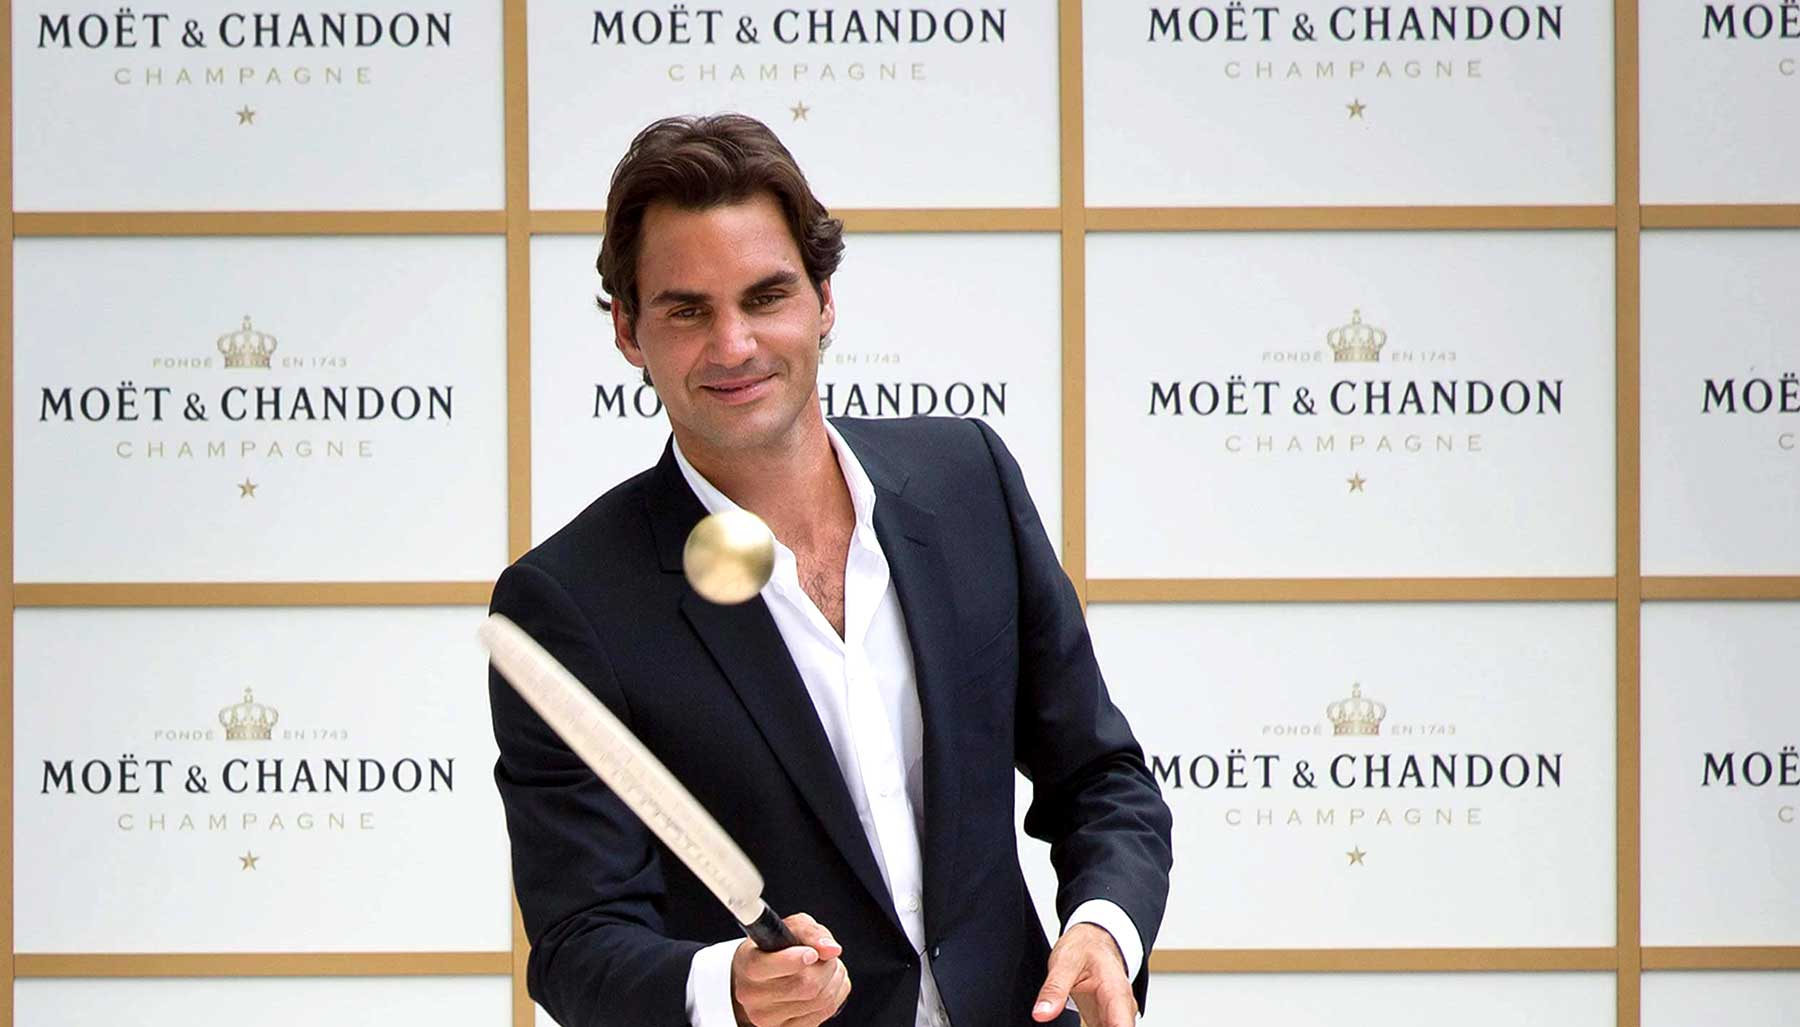 Roger Federer with racquet and gold tennis ball at Moet et Chandon event in his honour